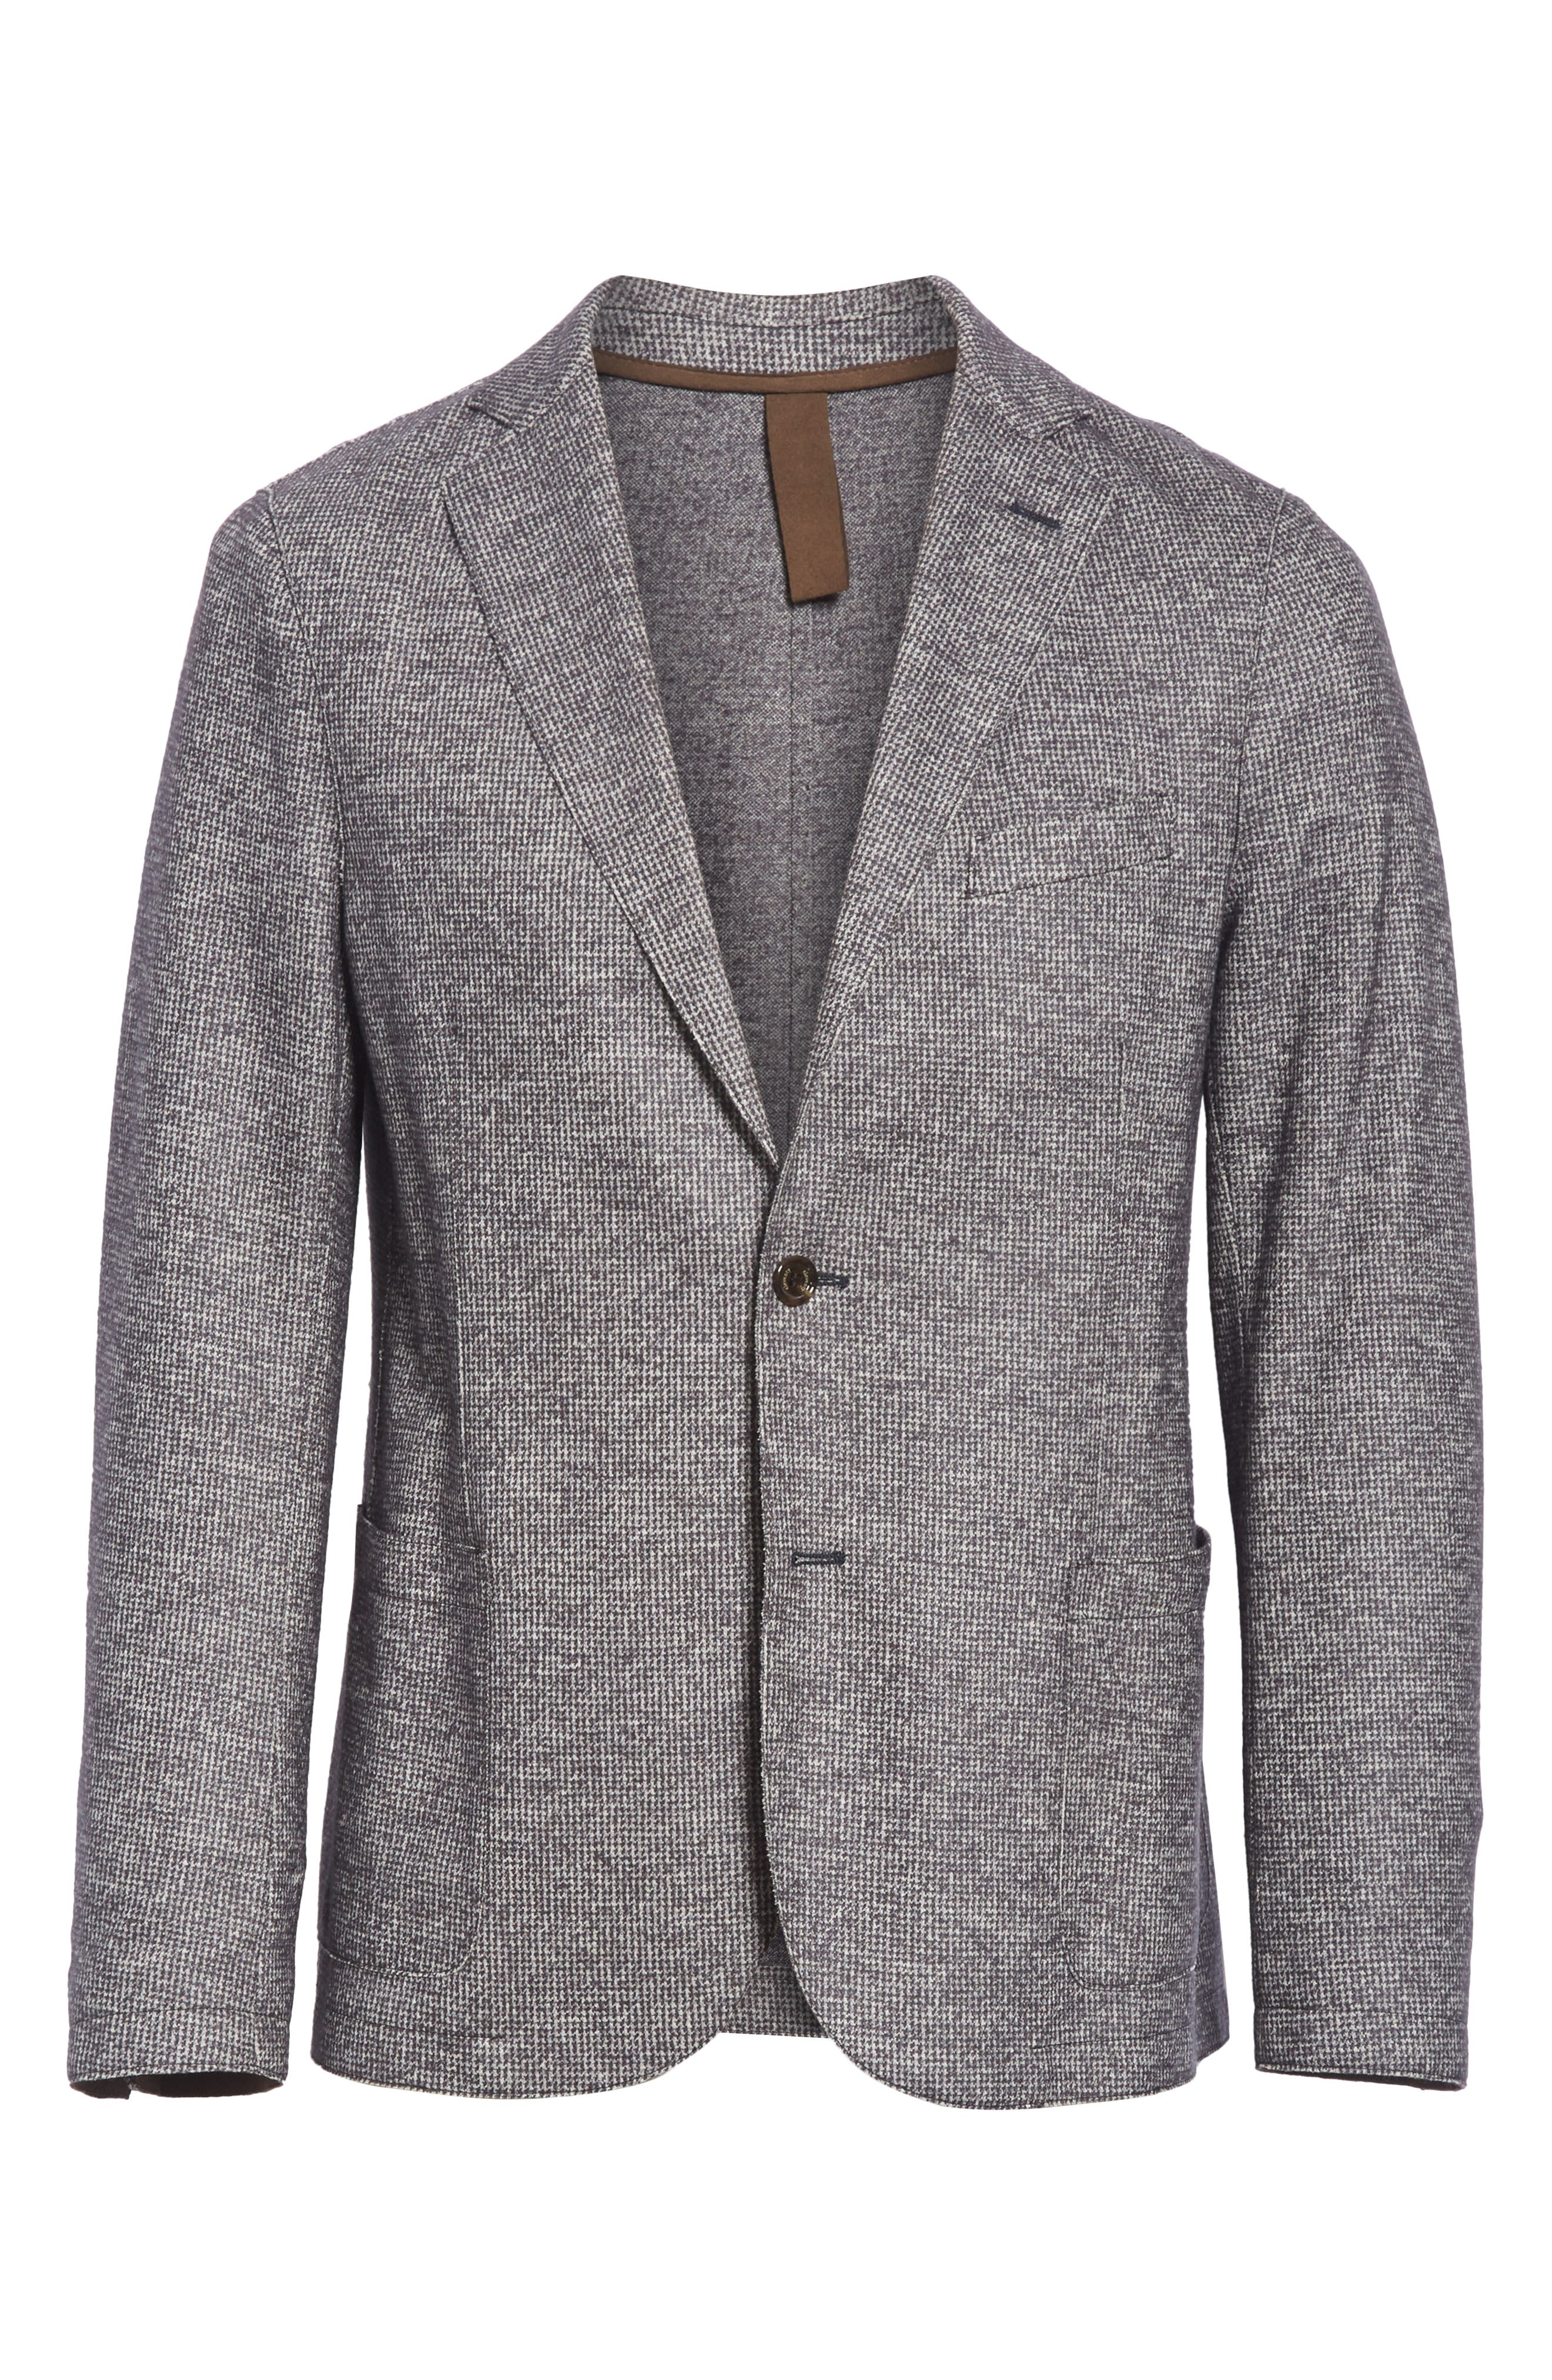 Trim Fit Houndstooth Wool & Cotton Sport Coat,                             Alternate thumbnail 5, color,                             GREY